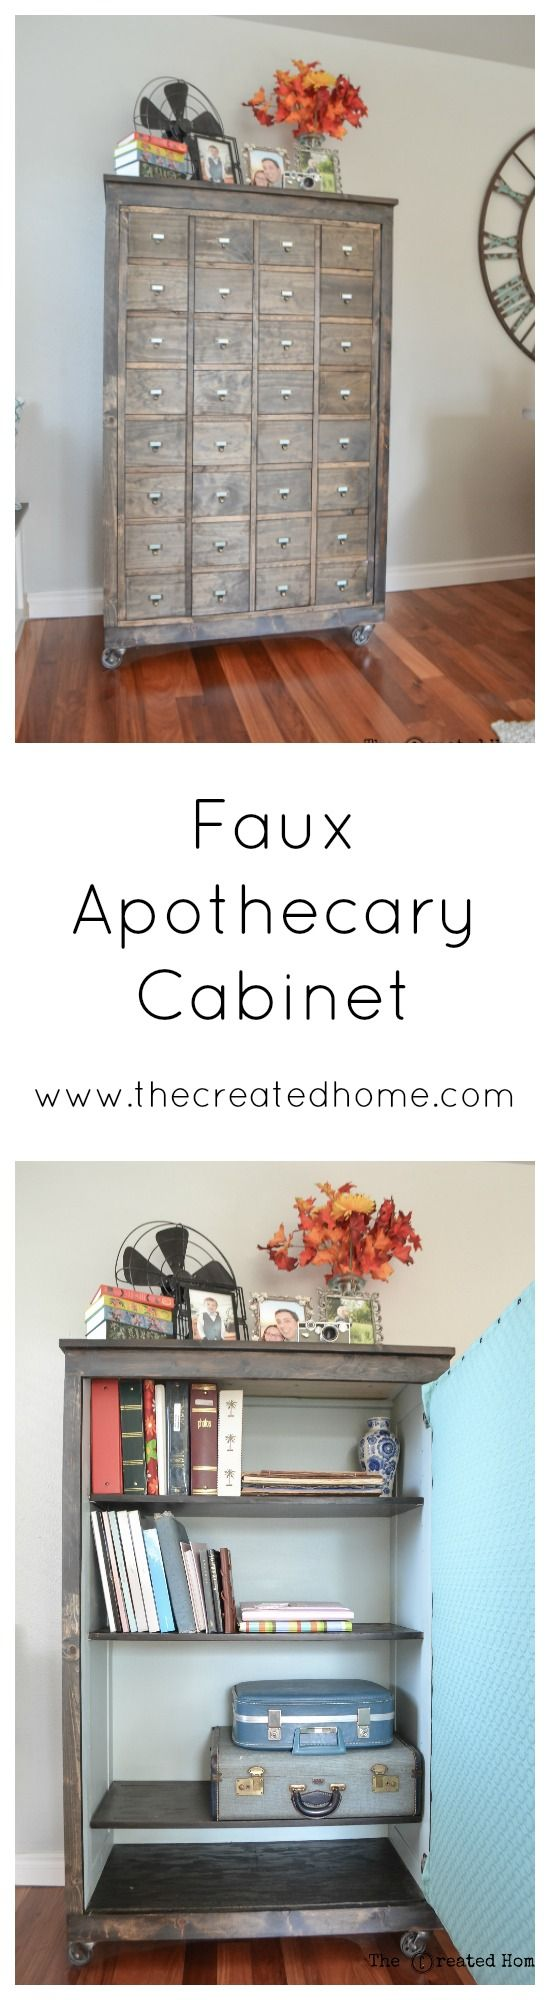 DIY Faux apothecary cabinet